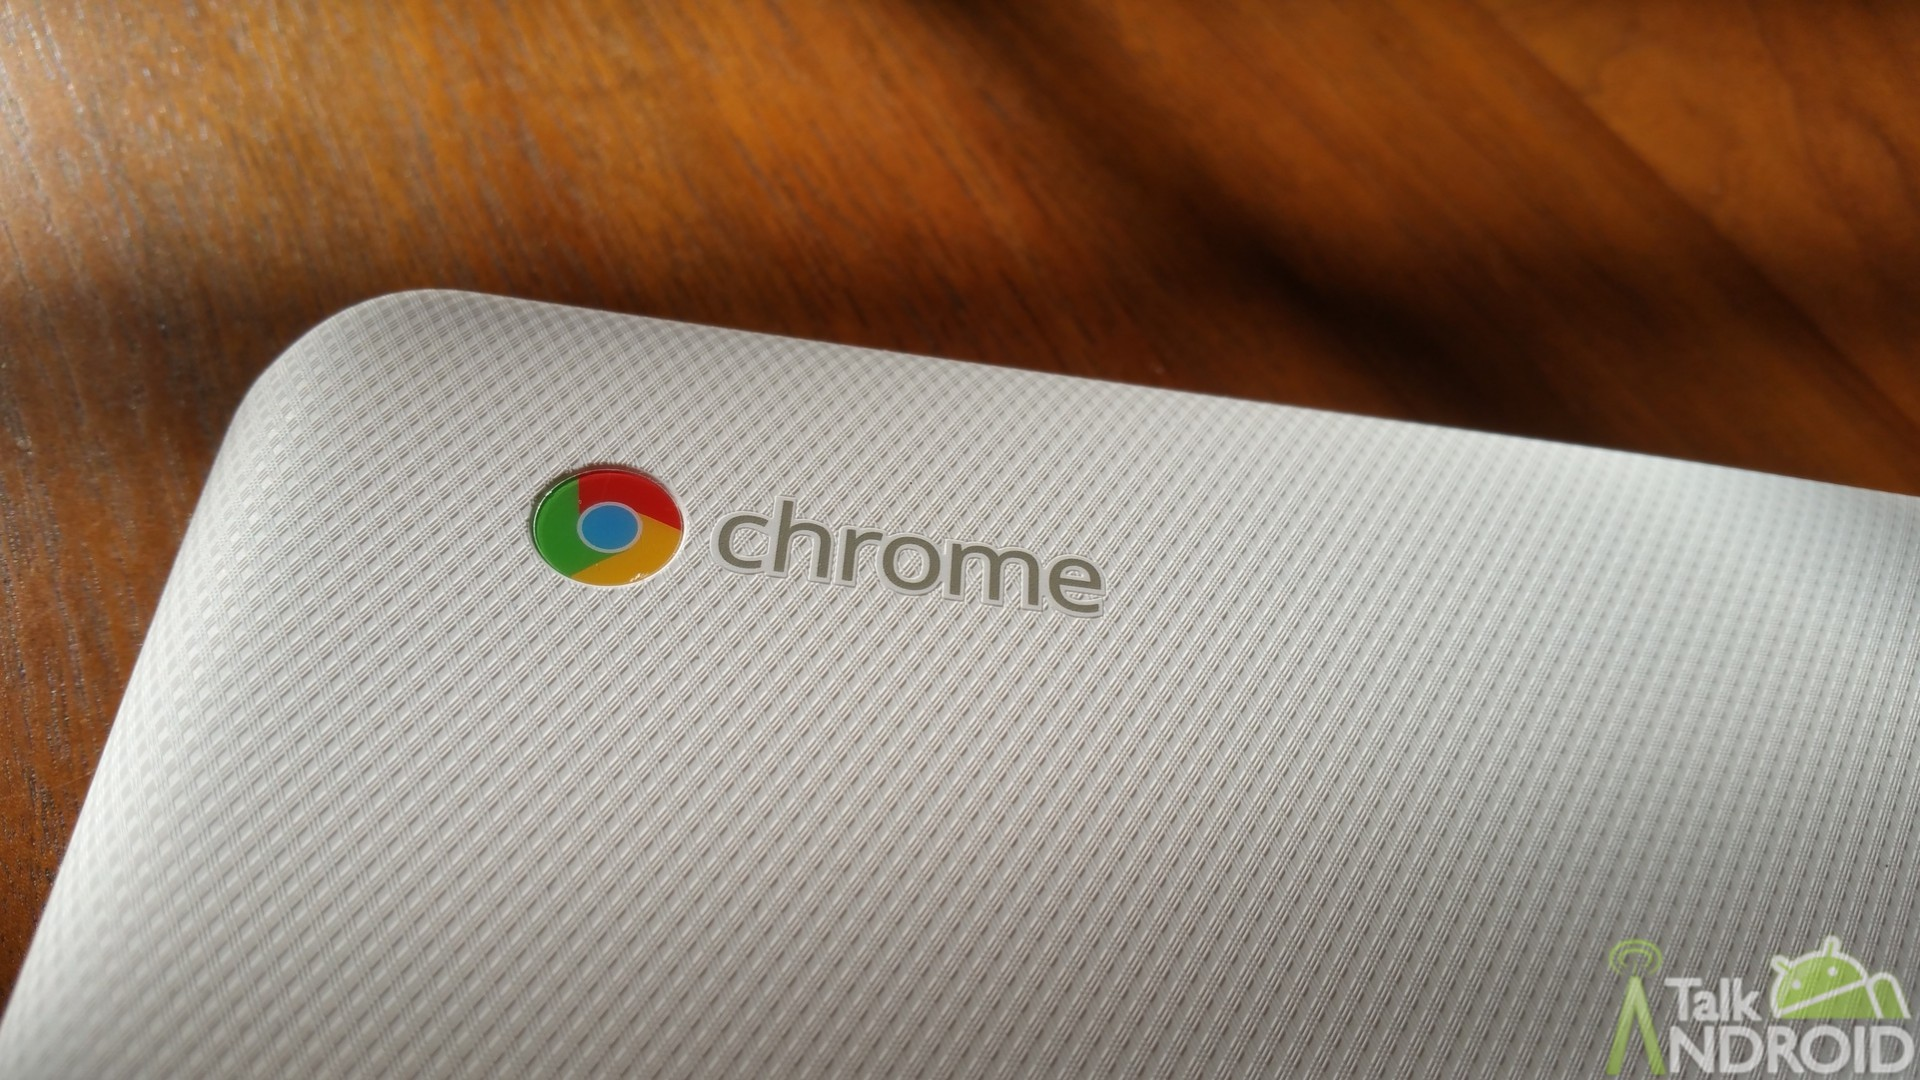 Google Play Store now available for (some) Chromebooks on stable channel